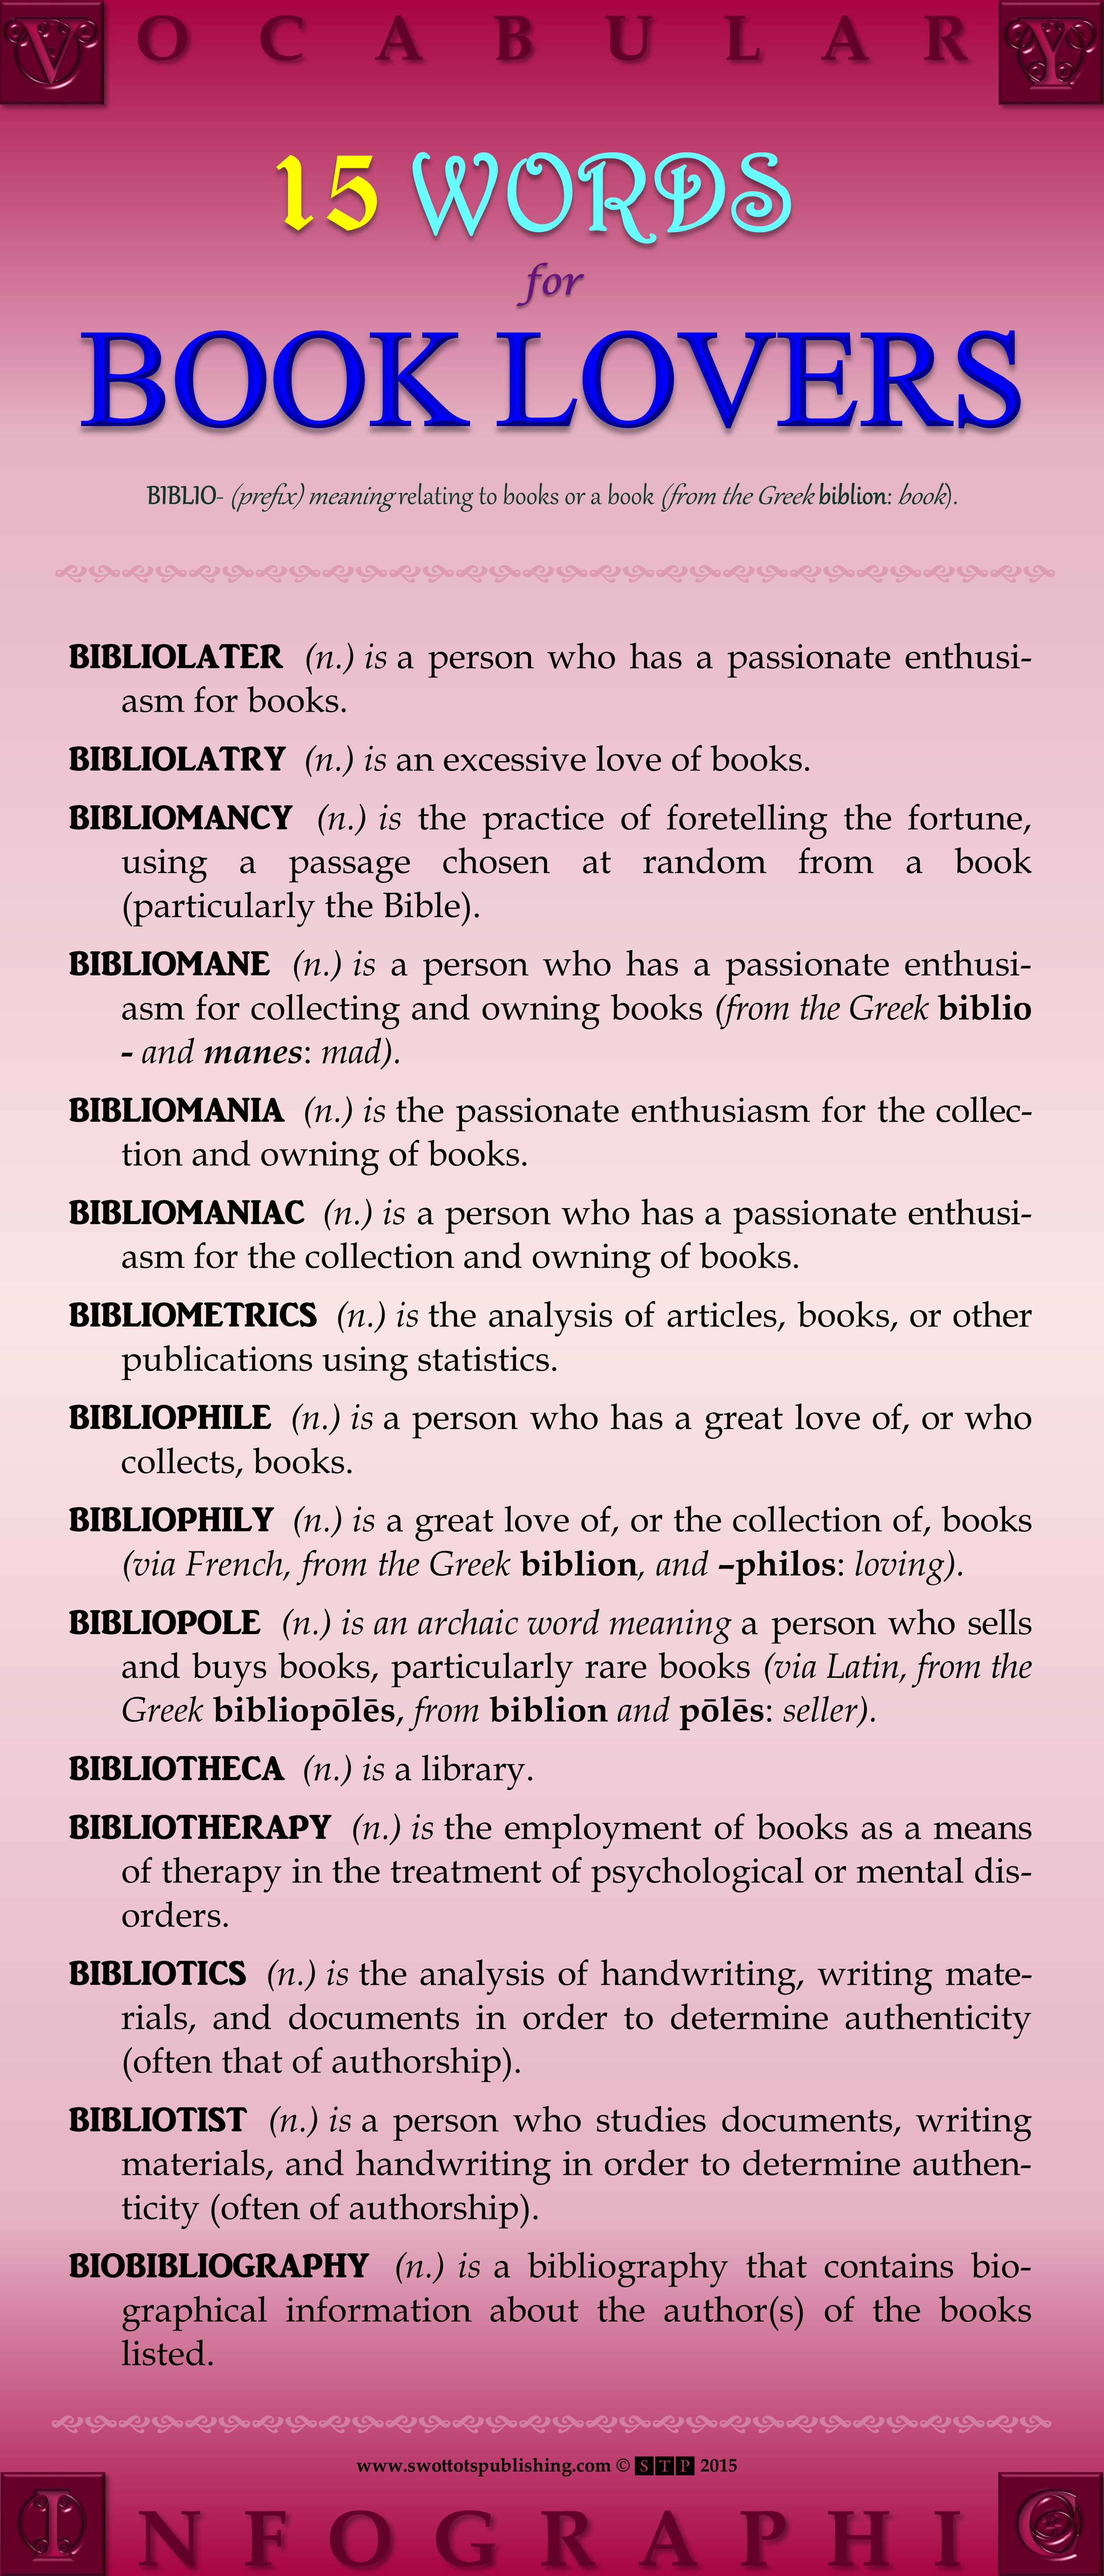 Vocabulary Infographic-Word Banks-Book Lovers' Words-001